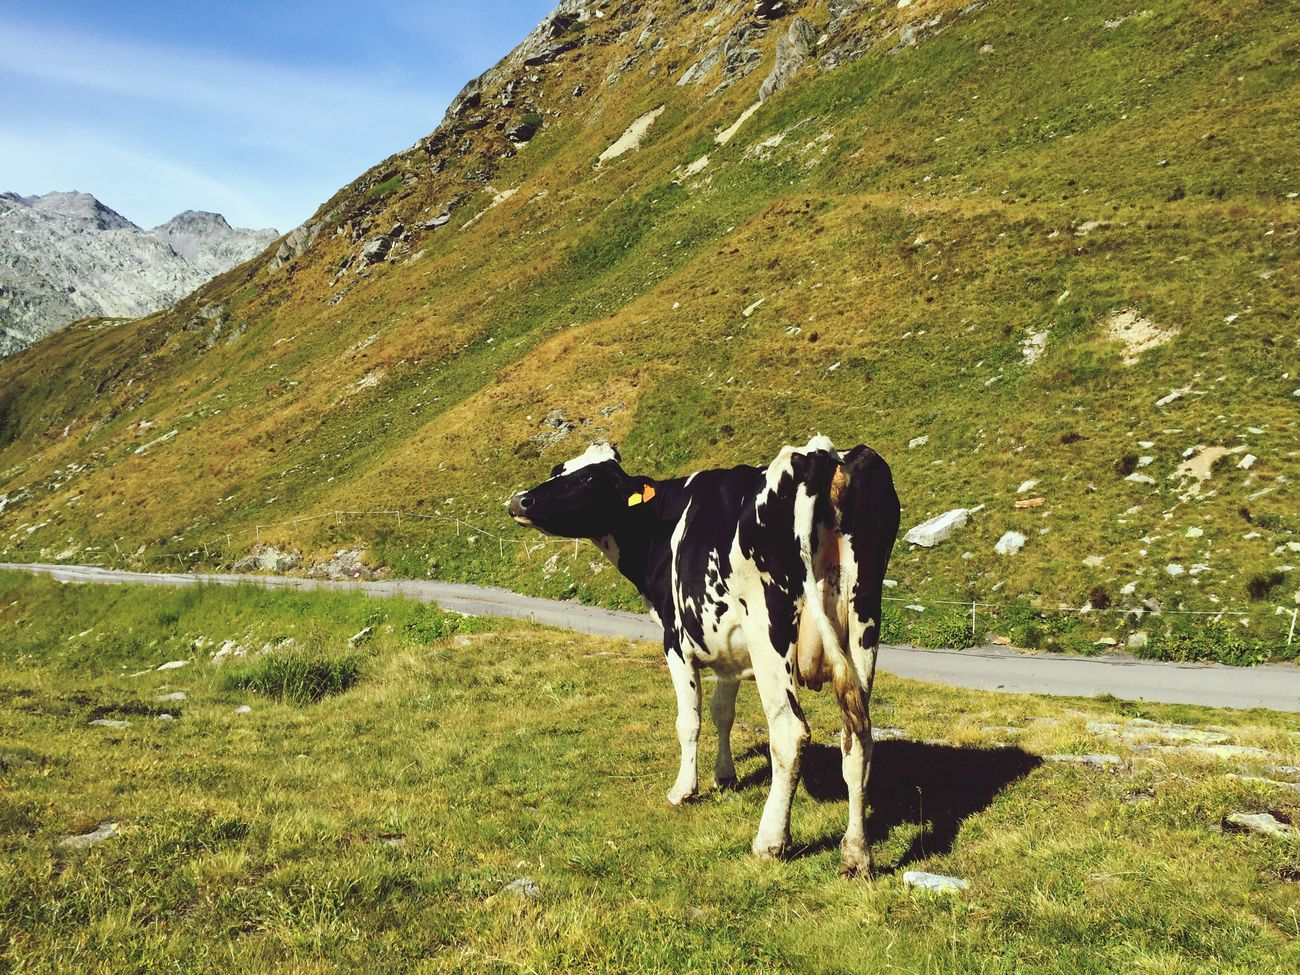 Cow Cows Alps Swiss Alps Swiss Mountains Animals Animal Themes Animal Kuh Rind Wild Blackandwhite Black And White Colors Colour Of Life Photography Gotthard Sangottardo Grass Green Wildlife & Nature Photography In Motion Photo Of The Day EyeEm Best Shots Young